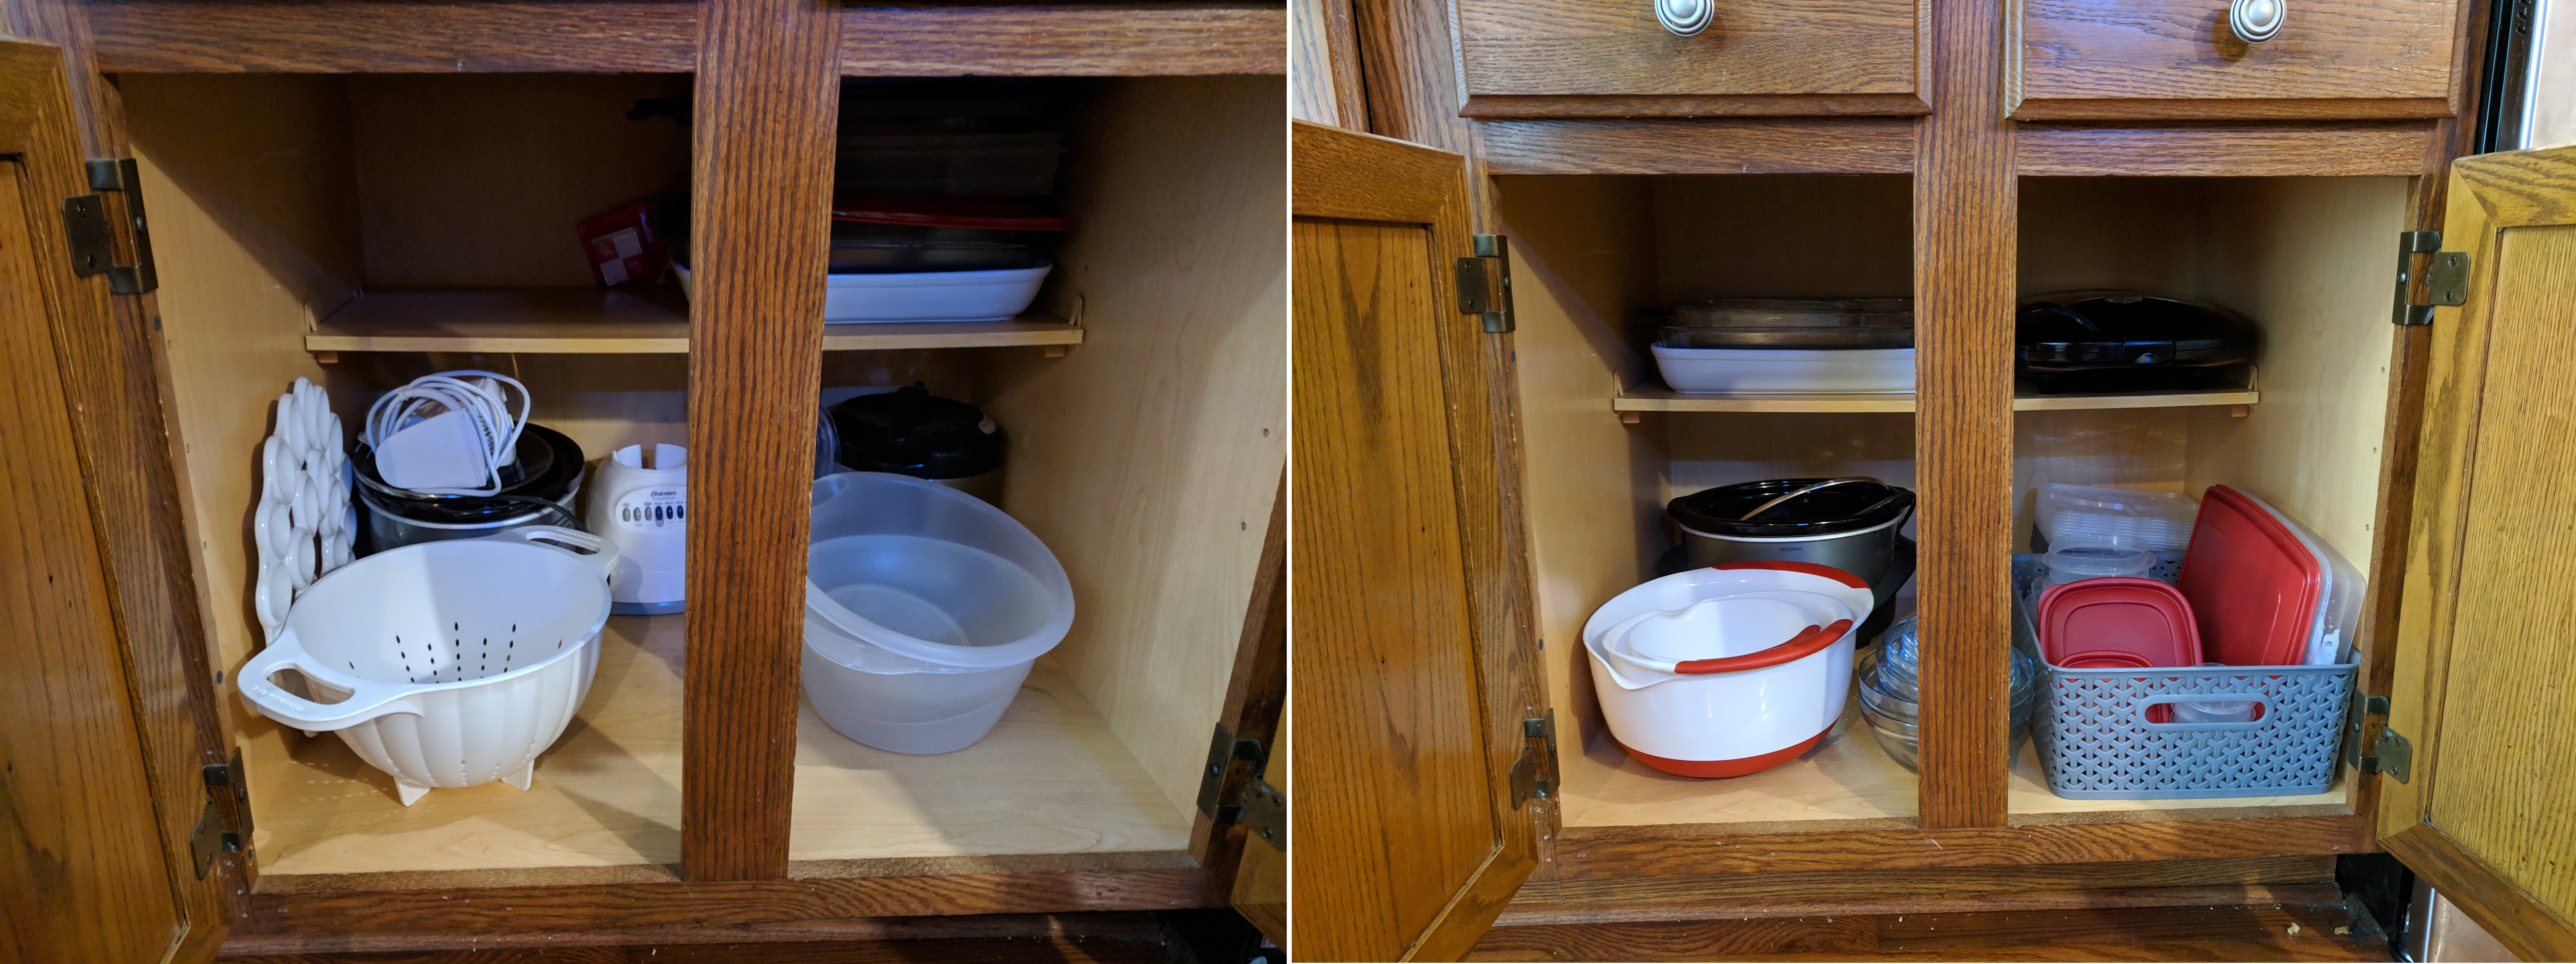 Tupperware Before and After.jpg